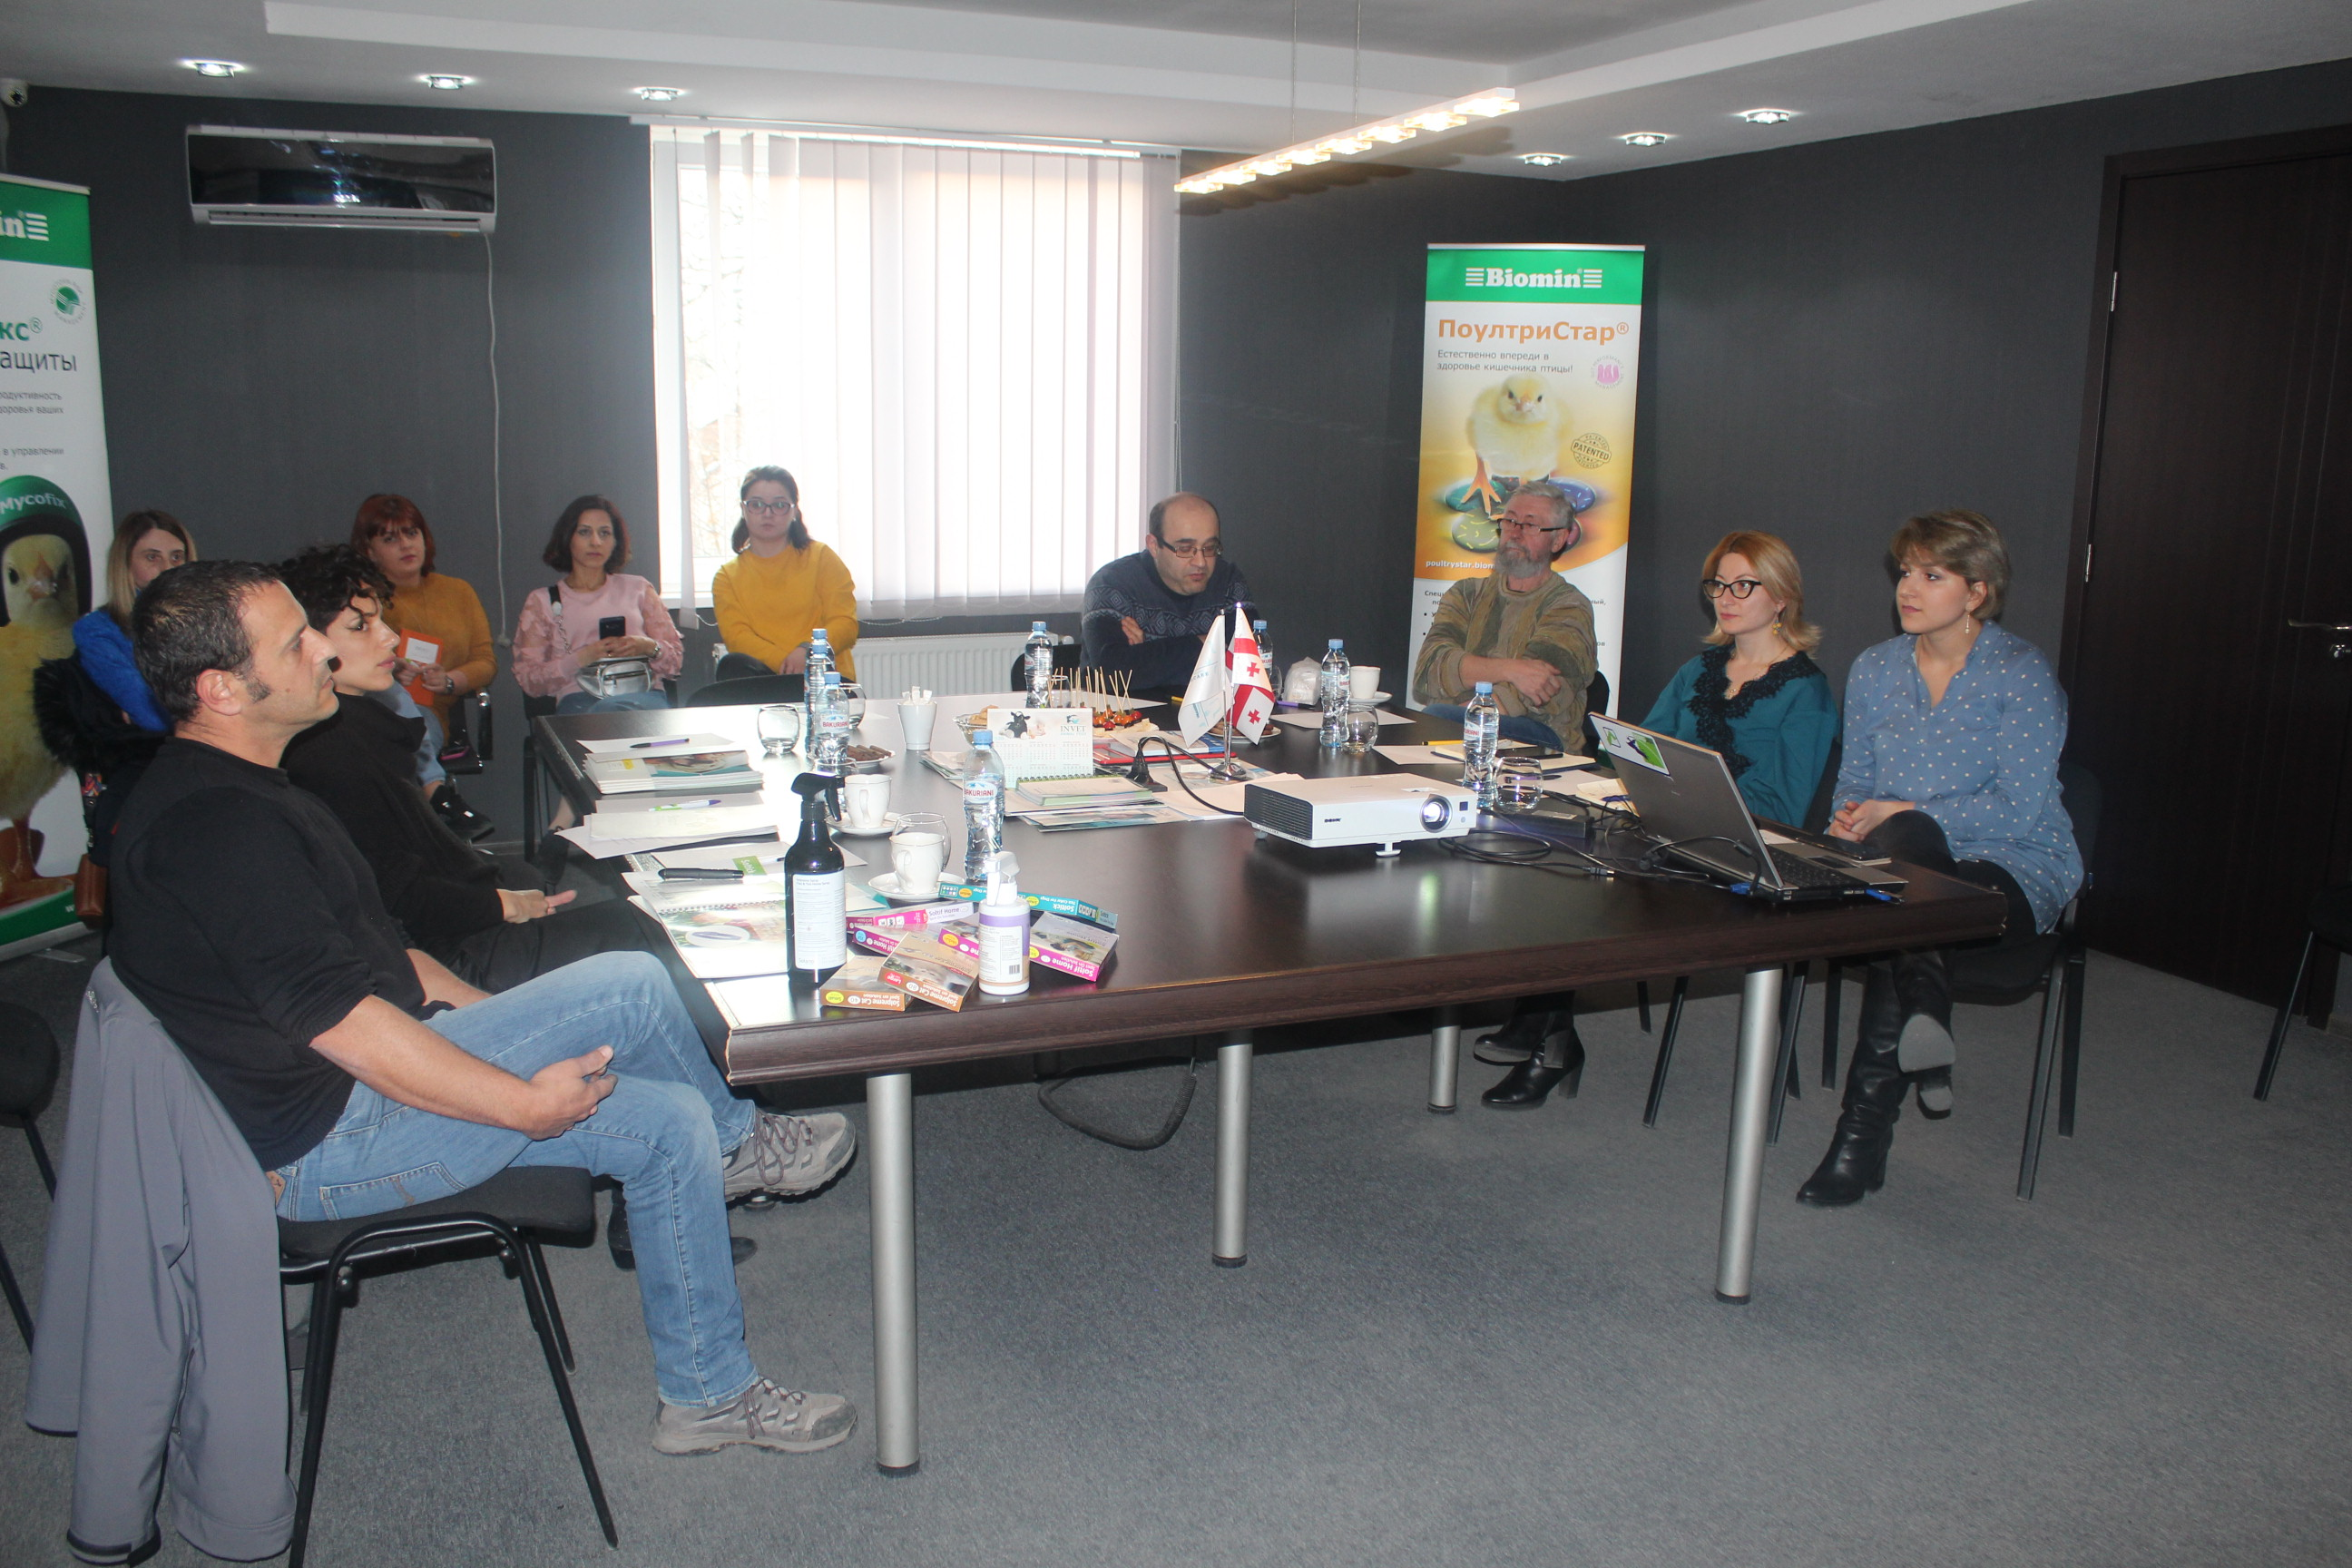 Solano's visit to the Invet Group